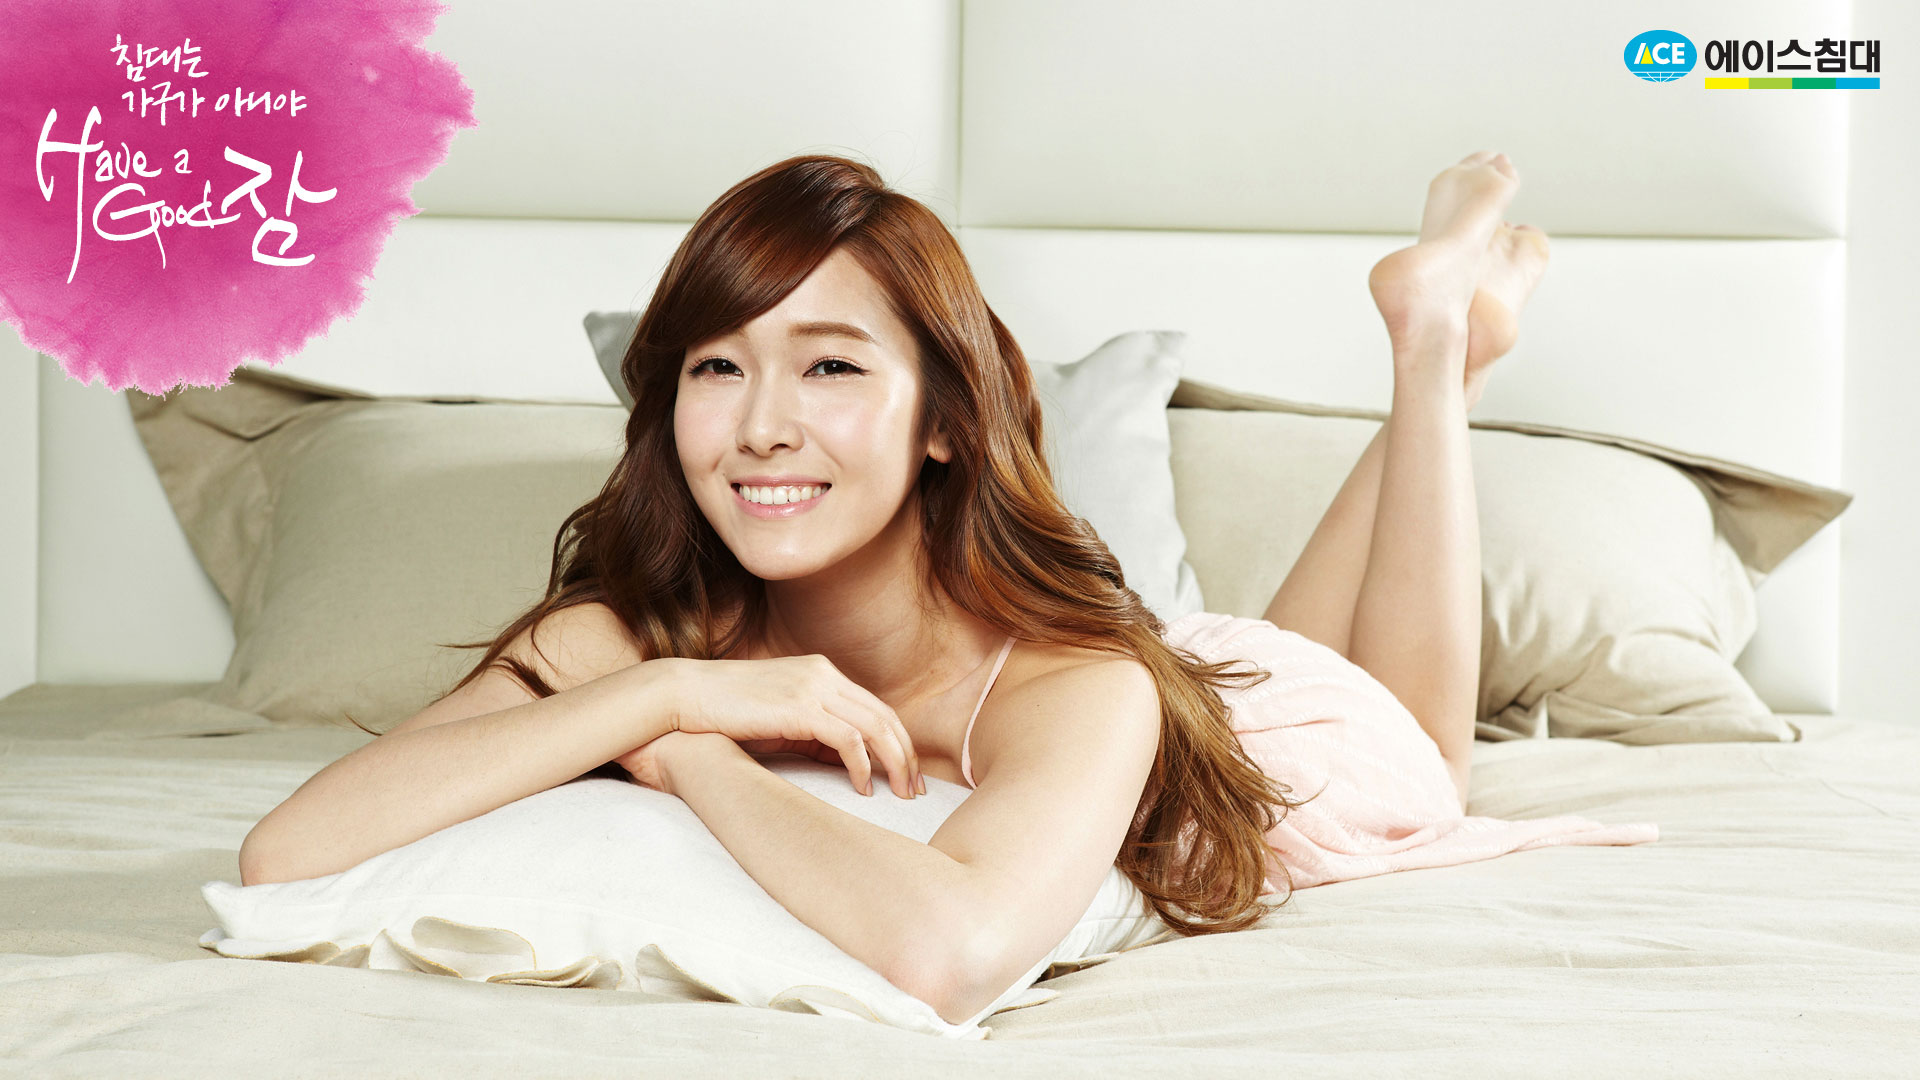 Ace Bed wallpapers | SNSD Pics